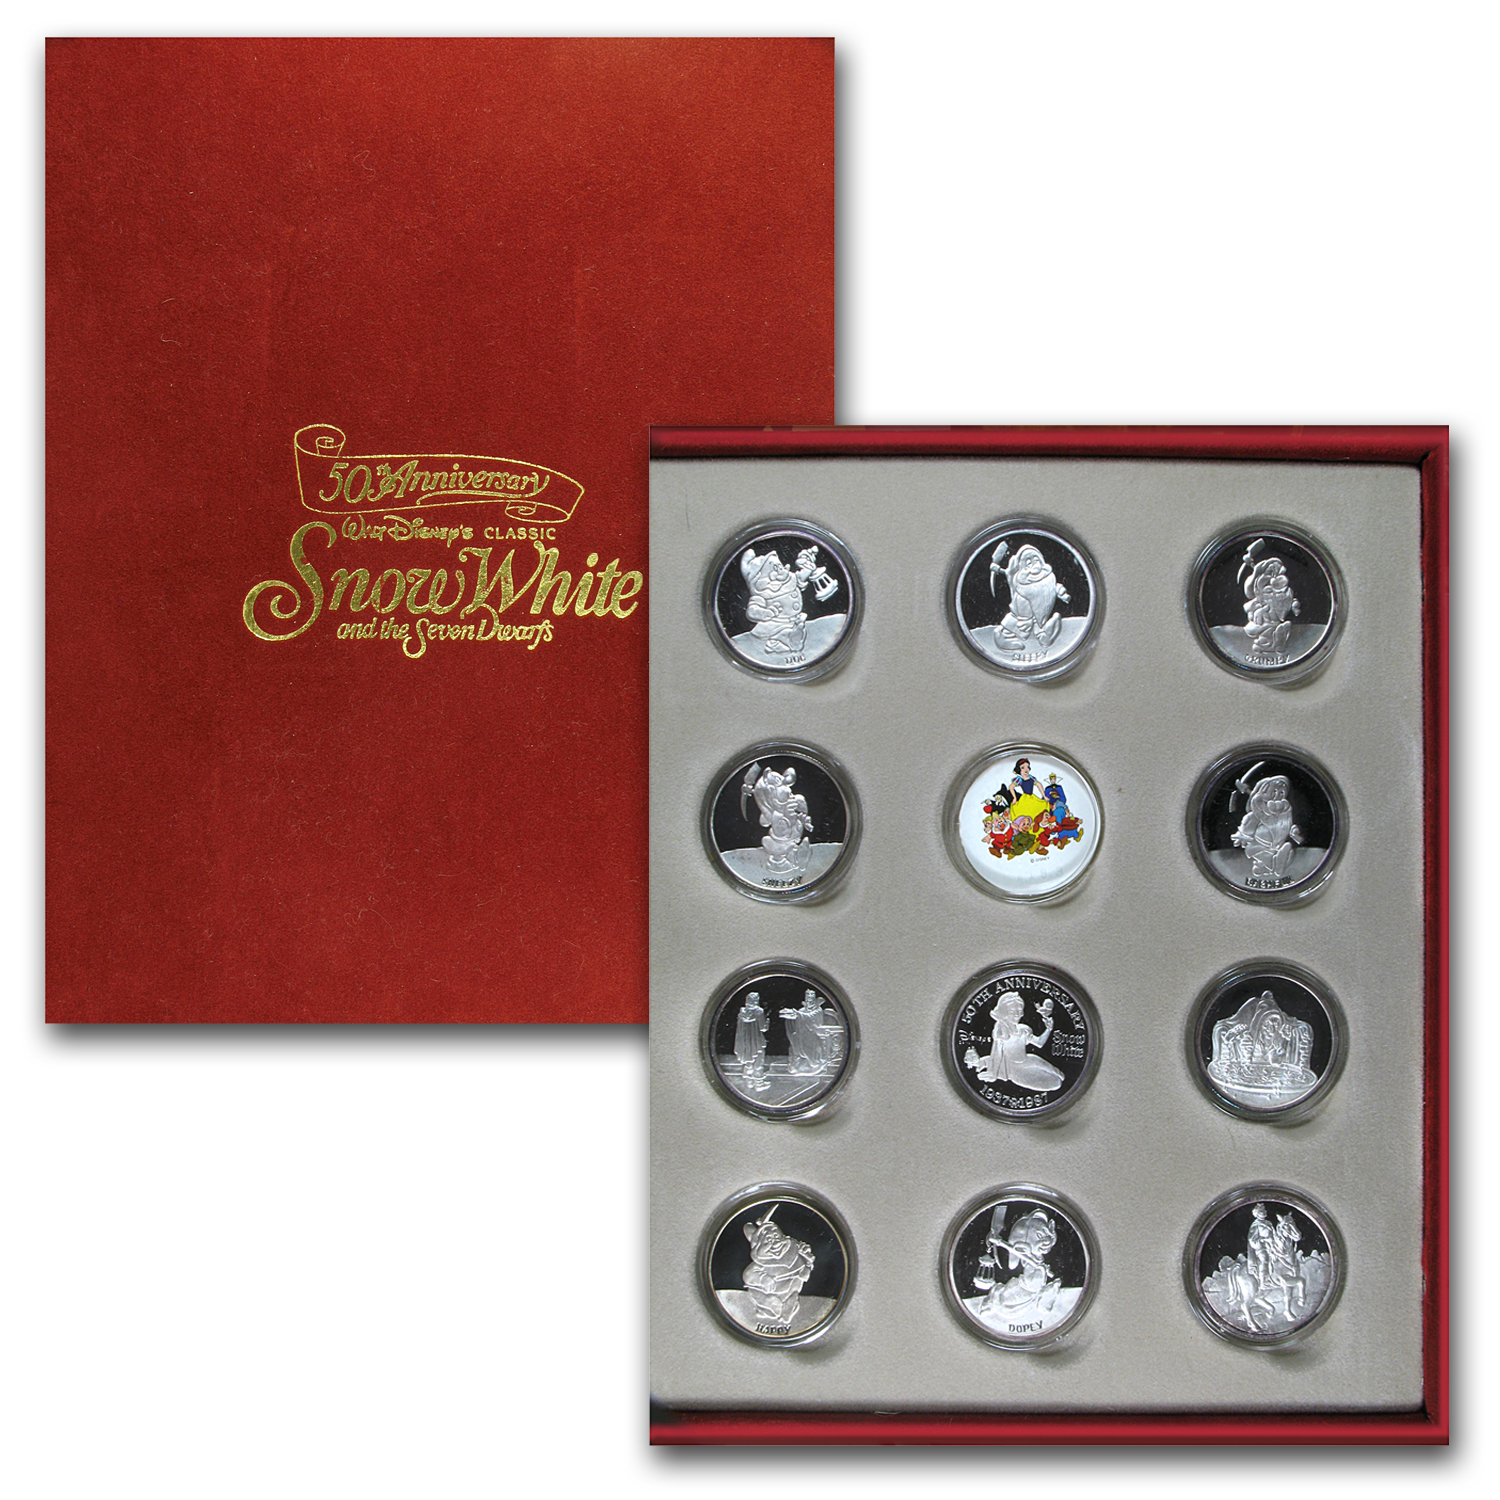 1 oz Silver Rounds - Disney/Snow White & the 7 Dwarfs (11 pc set)